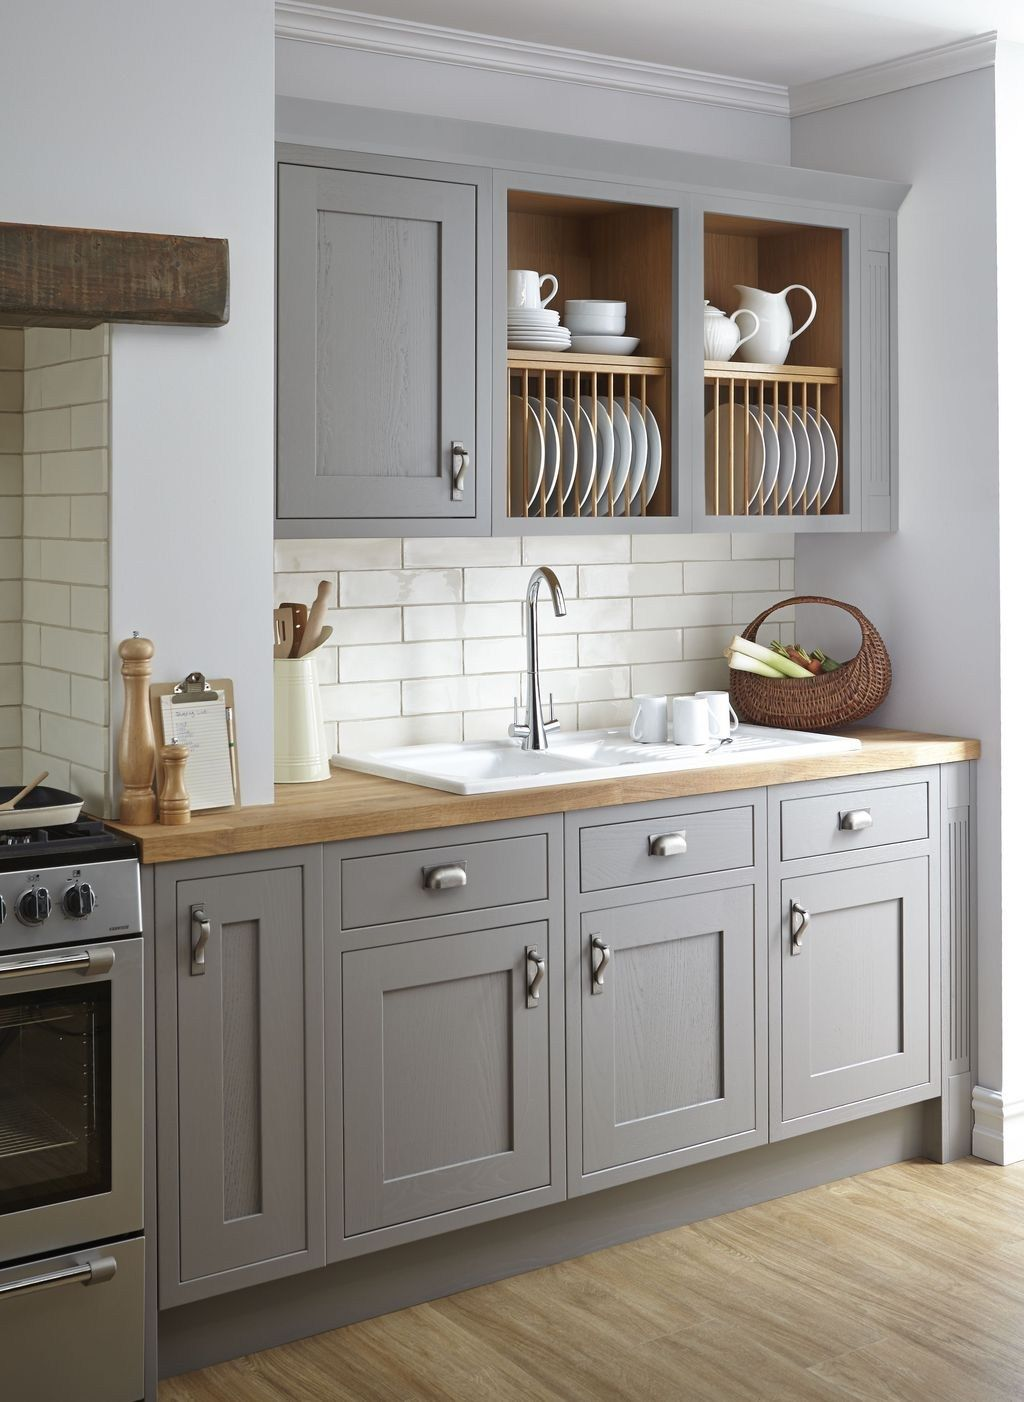 38 Inspiring Rustic Country Kitchen Ideas To Renew Your Ordinary Kitchen In 2020 Kitchen Cabinet Design Kitchen Design Refacing Kitchen Cabinets